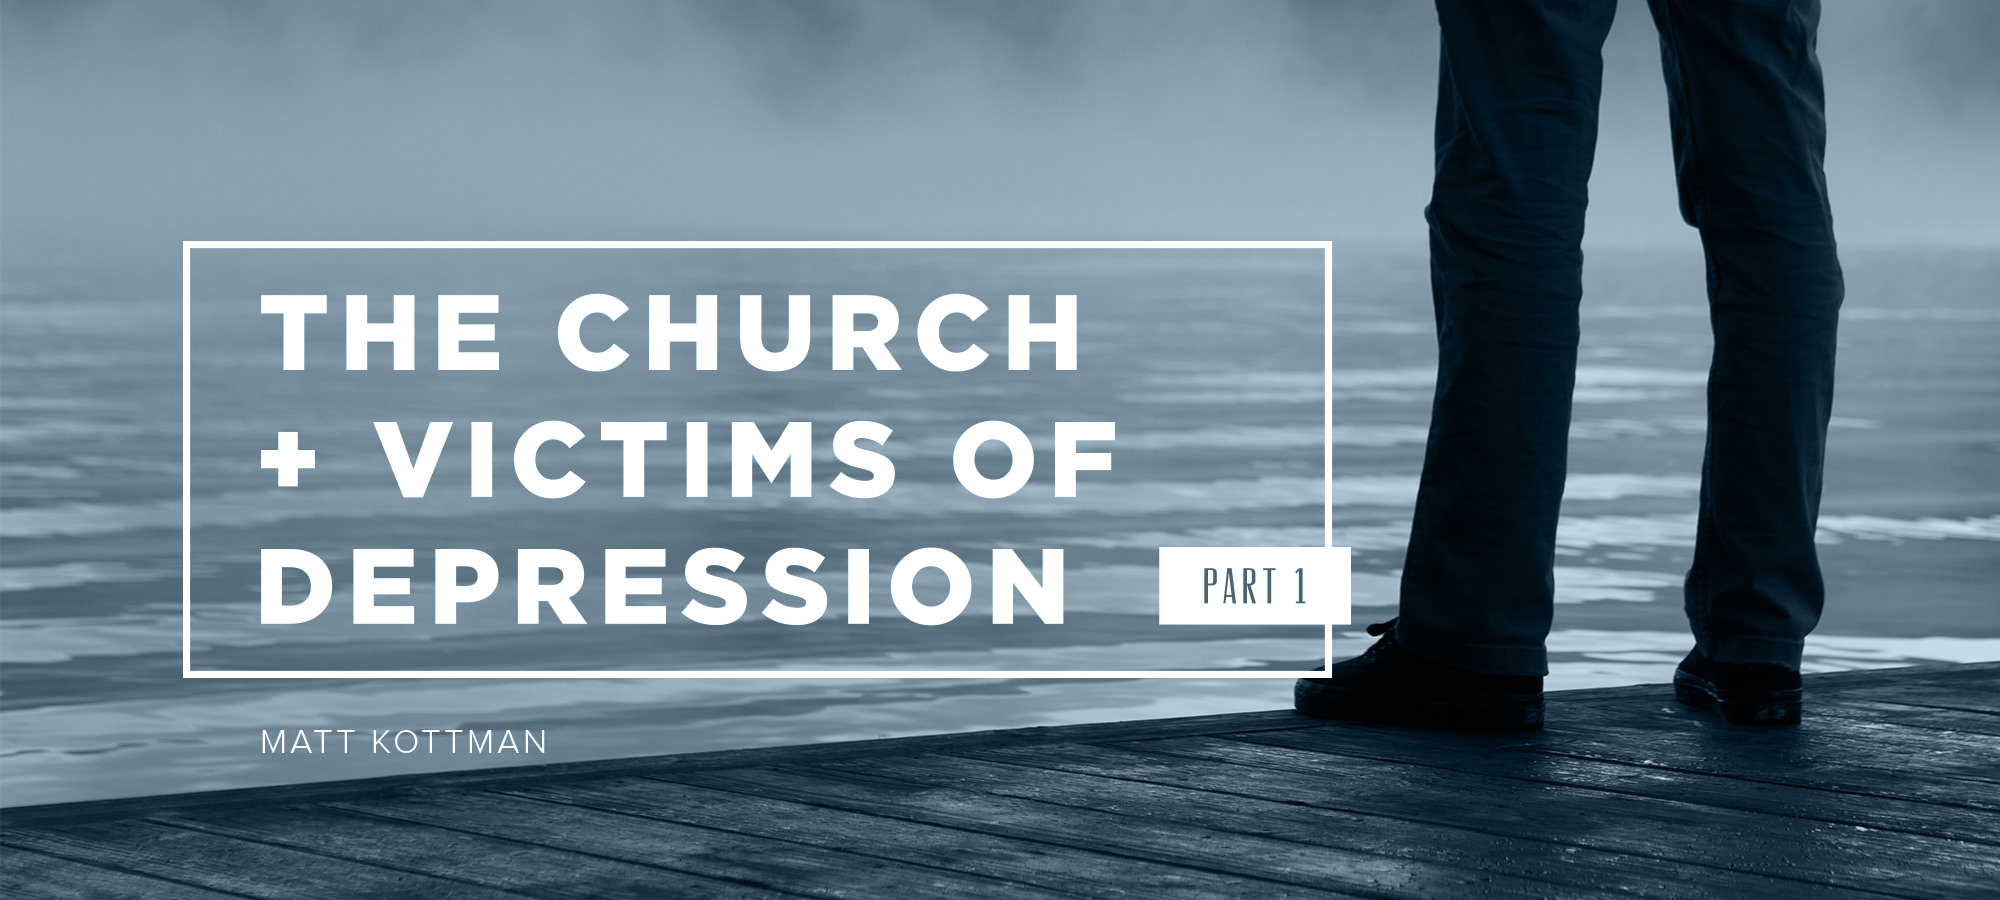 The Church & Victims of Depression